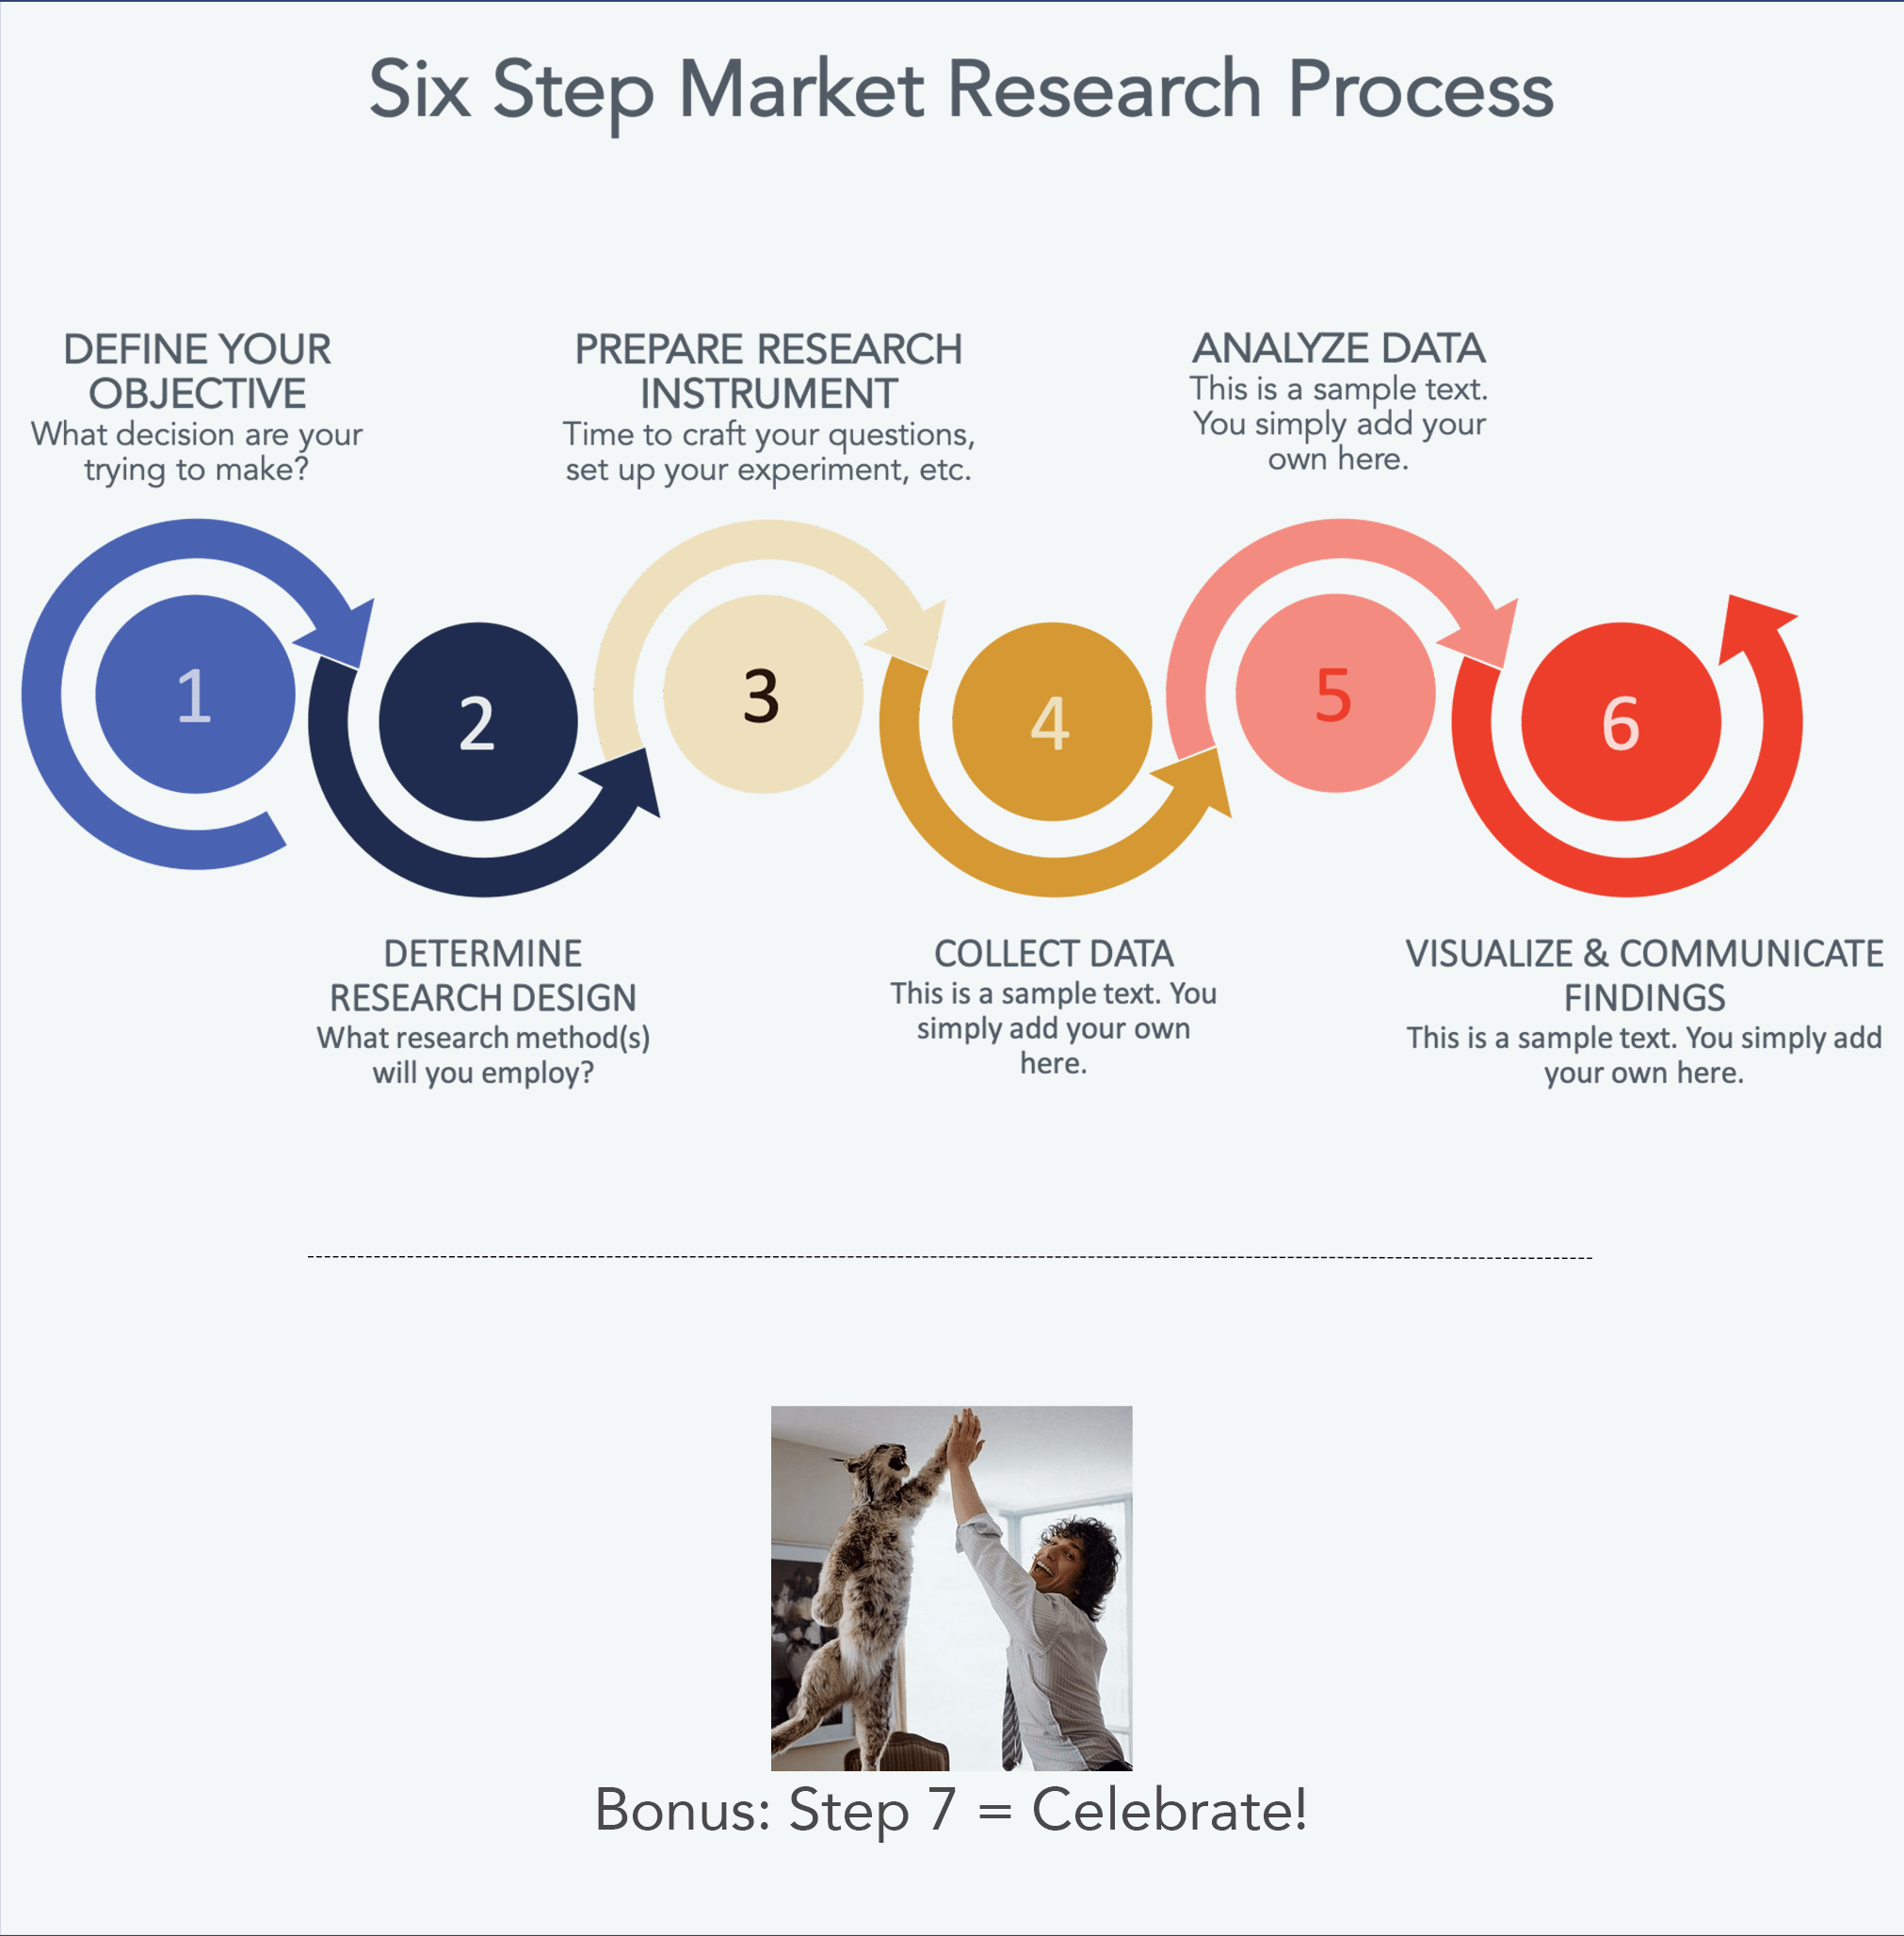 The Market Research Process: 6 Steps to Success